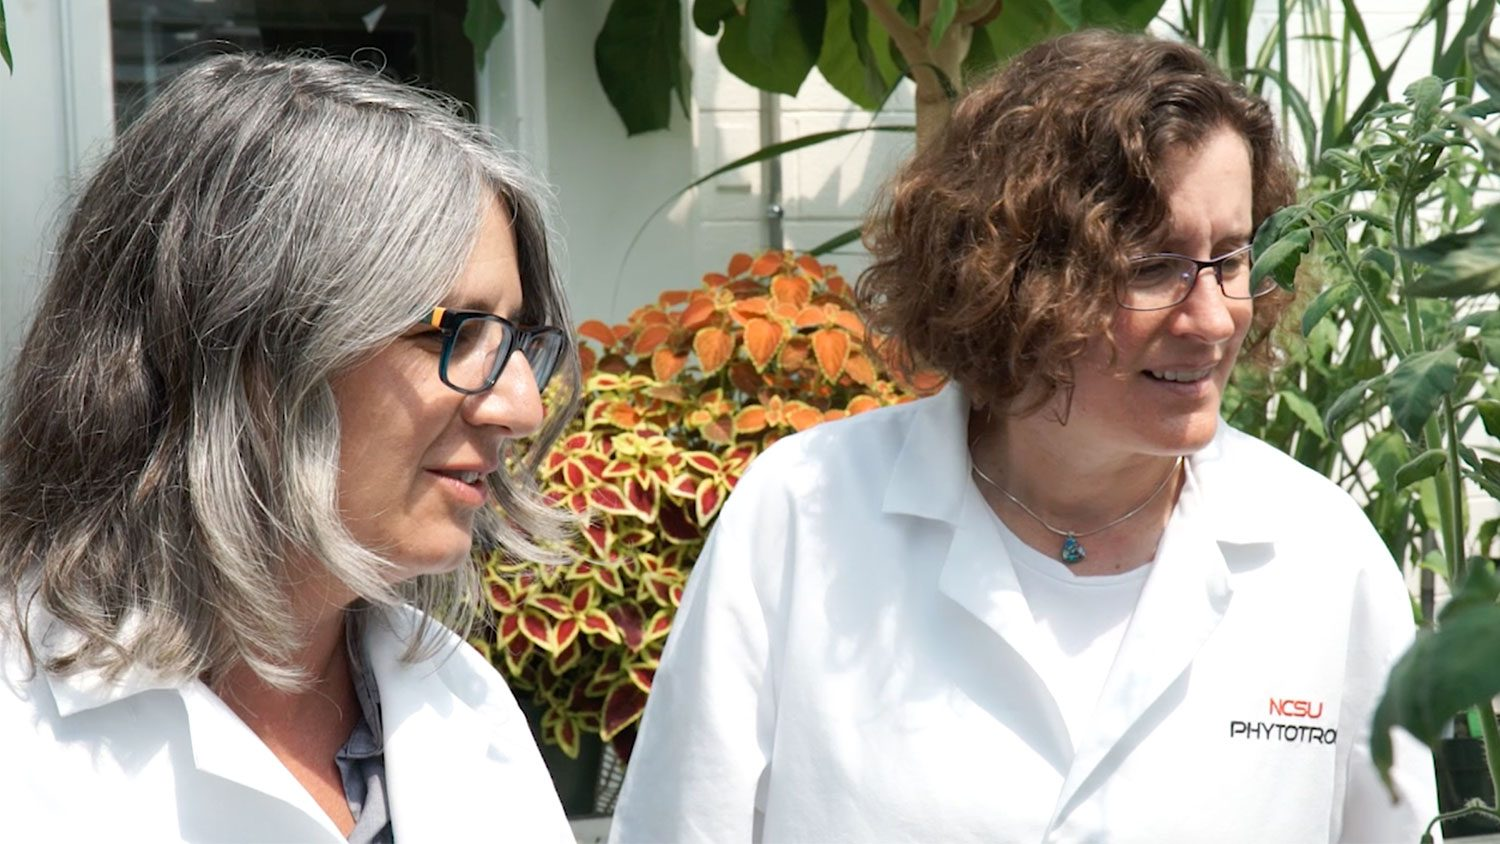 female faculty members in phytotron